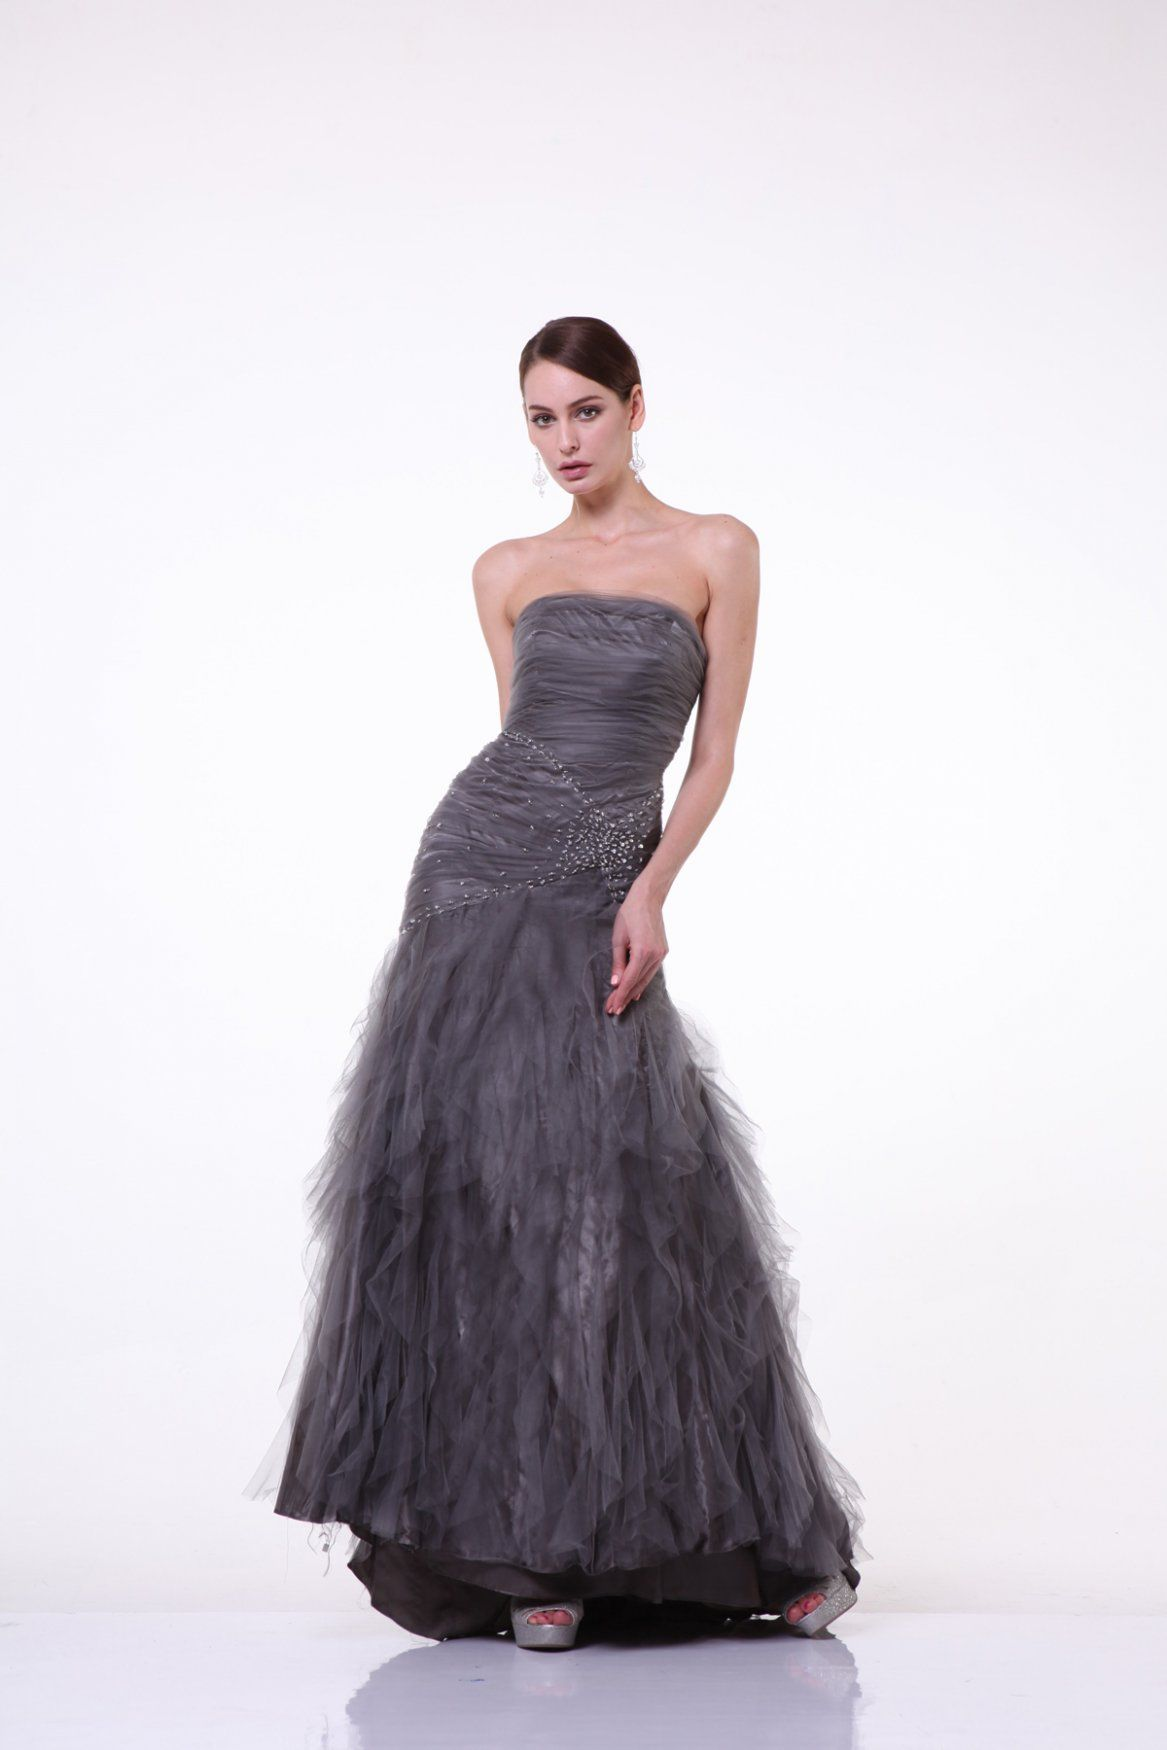 Like a queen youull feel powerful in this amazing dress from